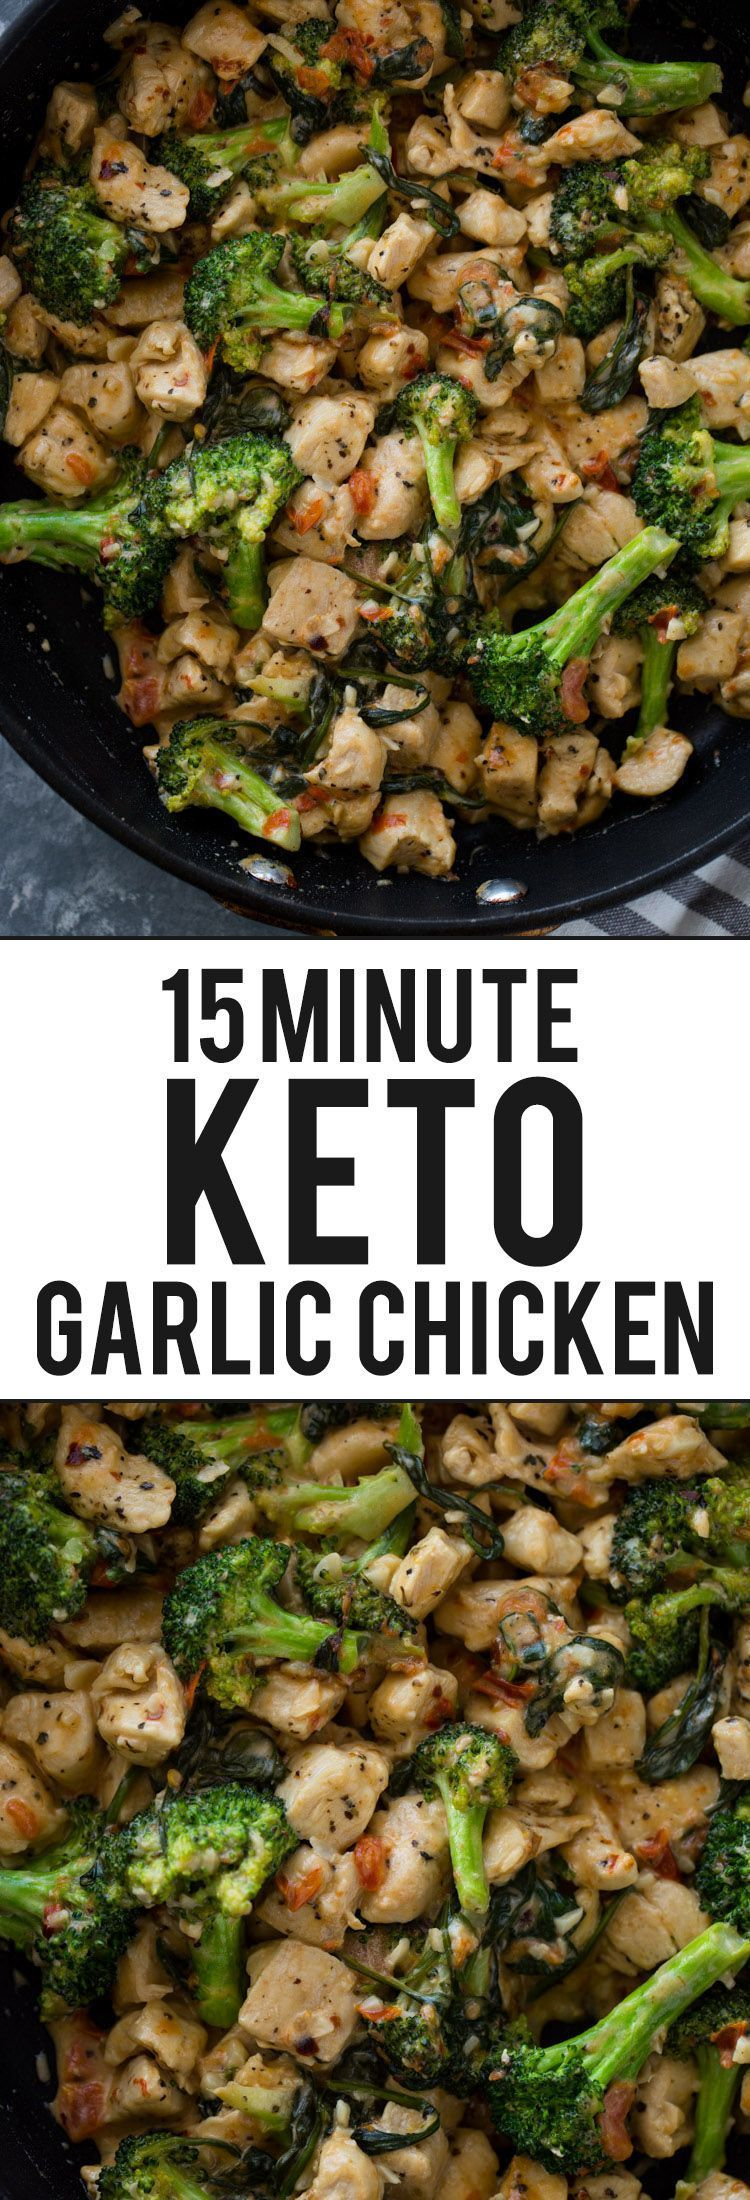 15 Minute Keto Garlic Chicken with Broccoli and Spinach-   15 Minute Keto Garlic... -  15 Minute Keto Garlic Chicken with Broccoli and Spinach-   15 Minute Keto Garlic Chicken with Brocc - #broccoli #Chicken #detoxdrinks #dietplanstoloseweight #fatburningdetoxdrinks #Garlic #Keto #ketogenicdiet #Minute #Spinach